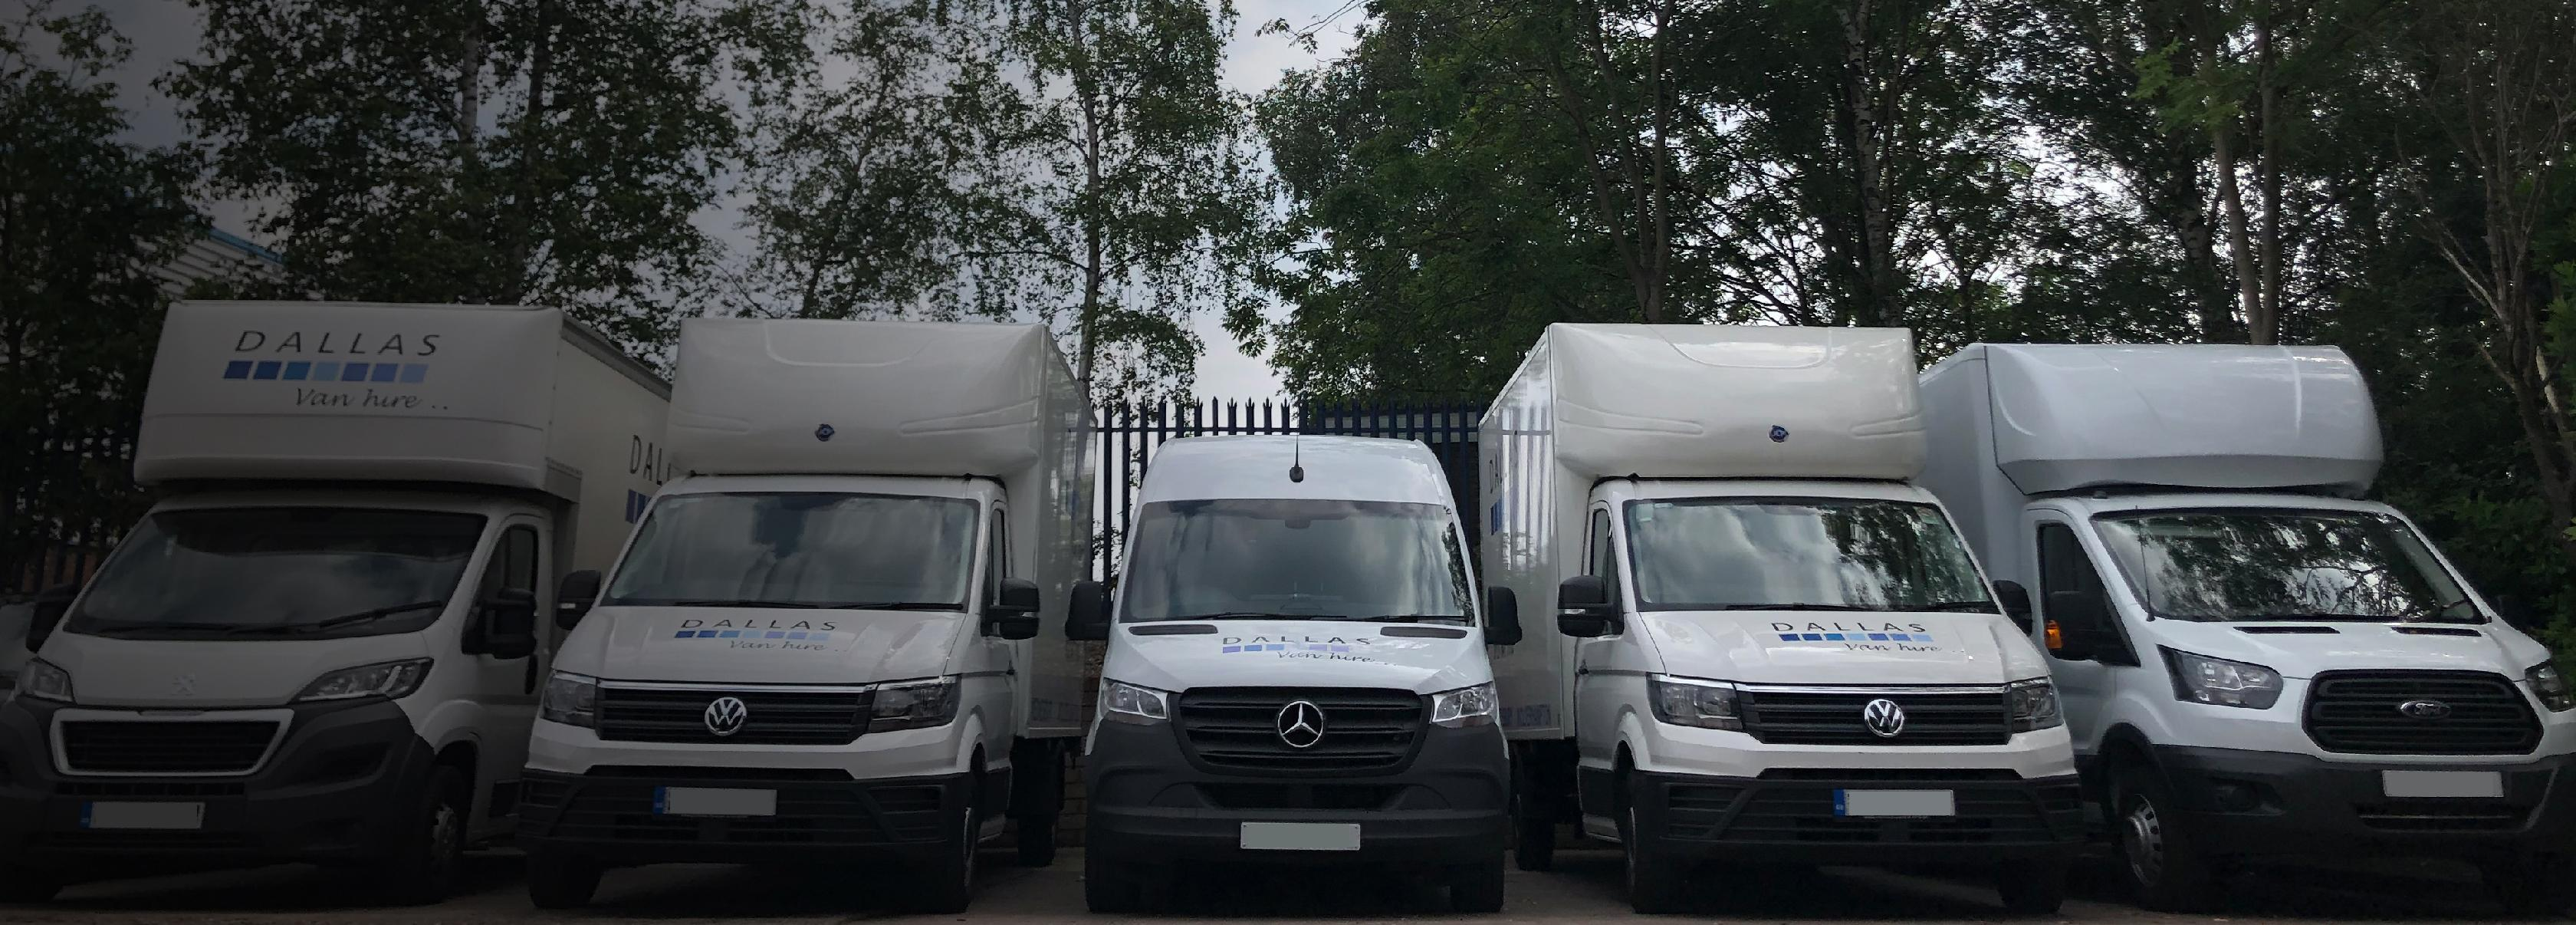 <h1><strong>DALLAS RENTALS LIMITED</strong></h1> 		<p>Specialist in</p> <ul><li>Flexible Business Rentals</li><li>Contract Hire</li><li>Transport Trailer Hire</li></ul>